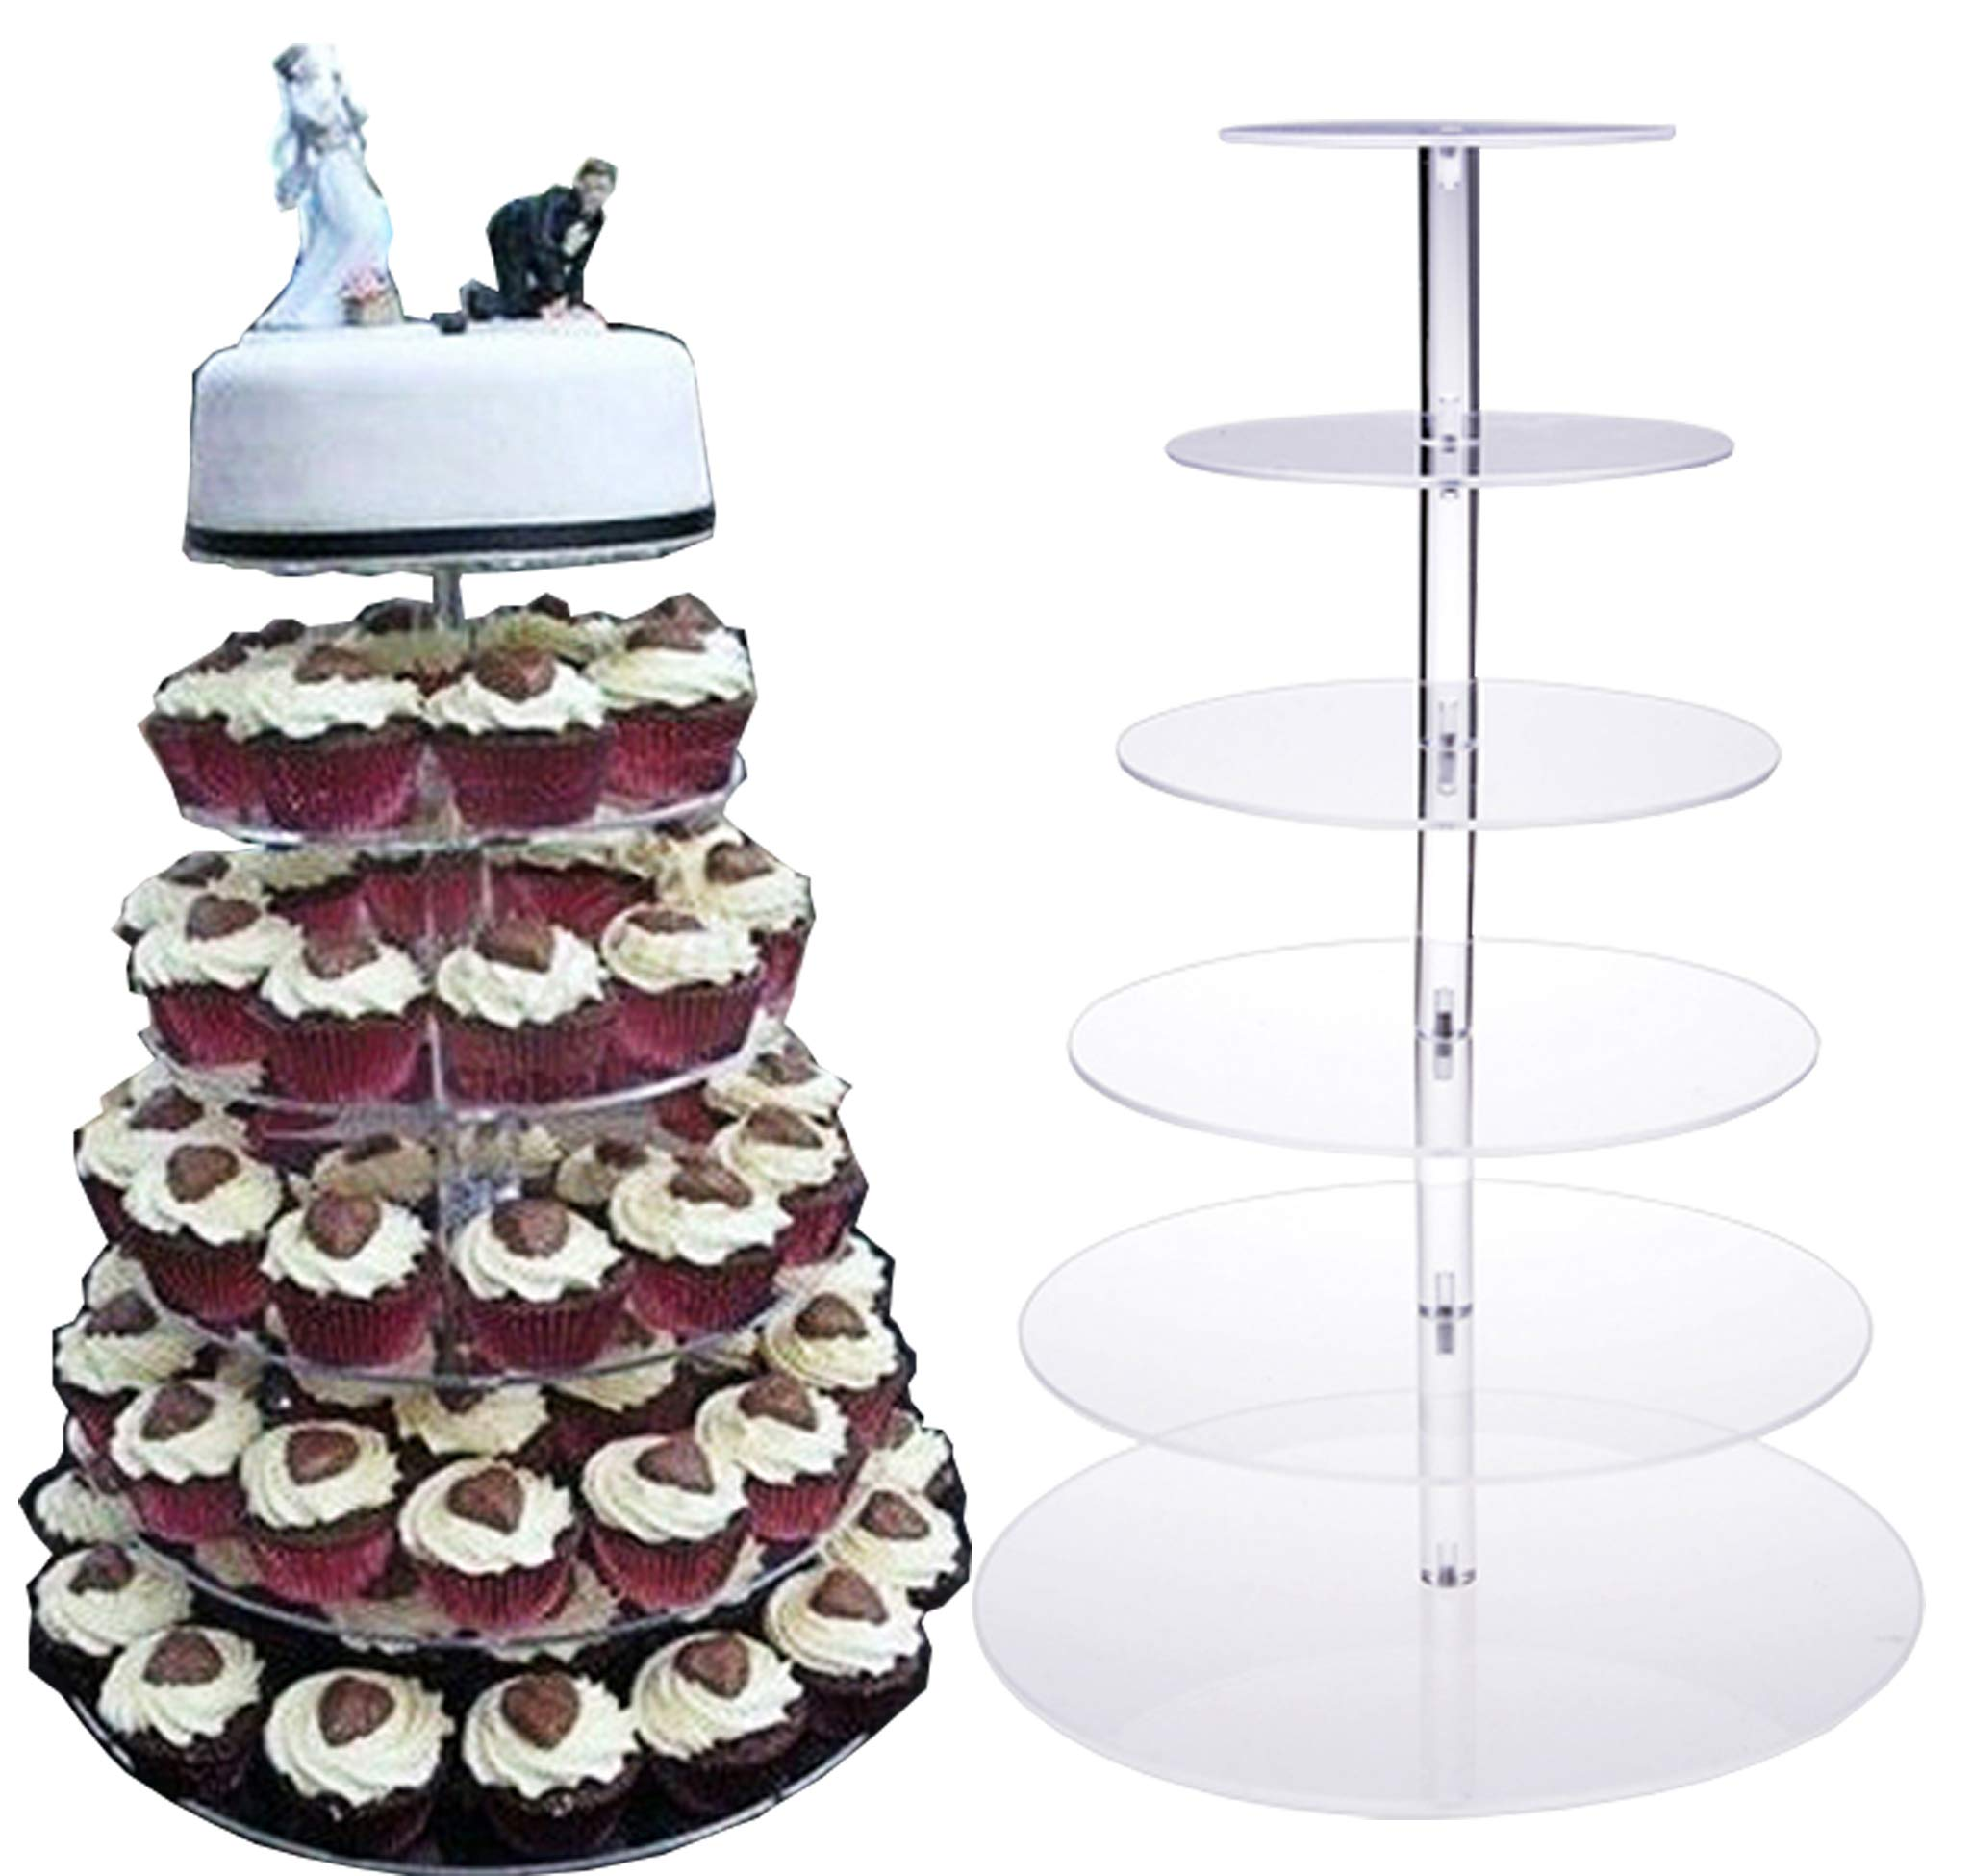 Oanon Round Crystal Clear Acrylic Cupcake Stand Wedding Display Cake Tower[US STOCK] (6 Tiers, Clear)